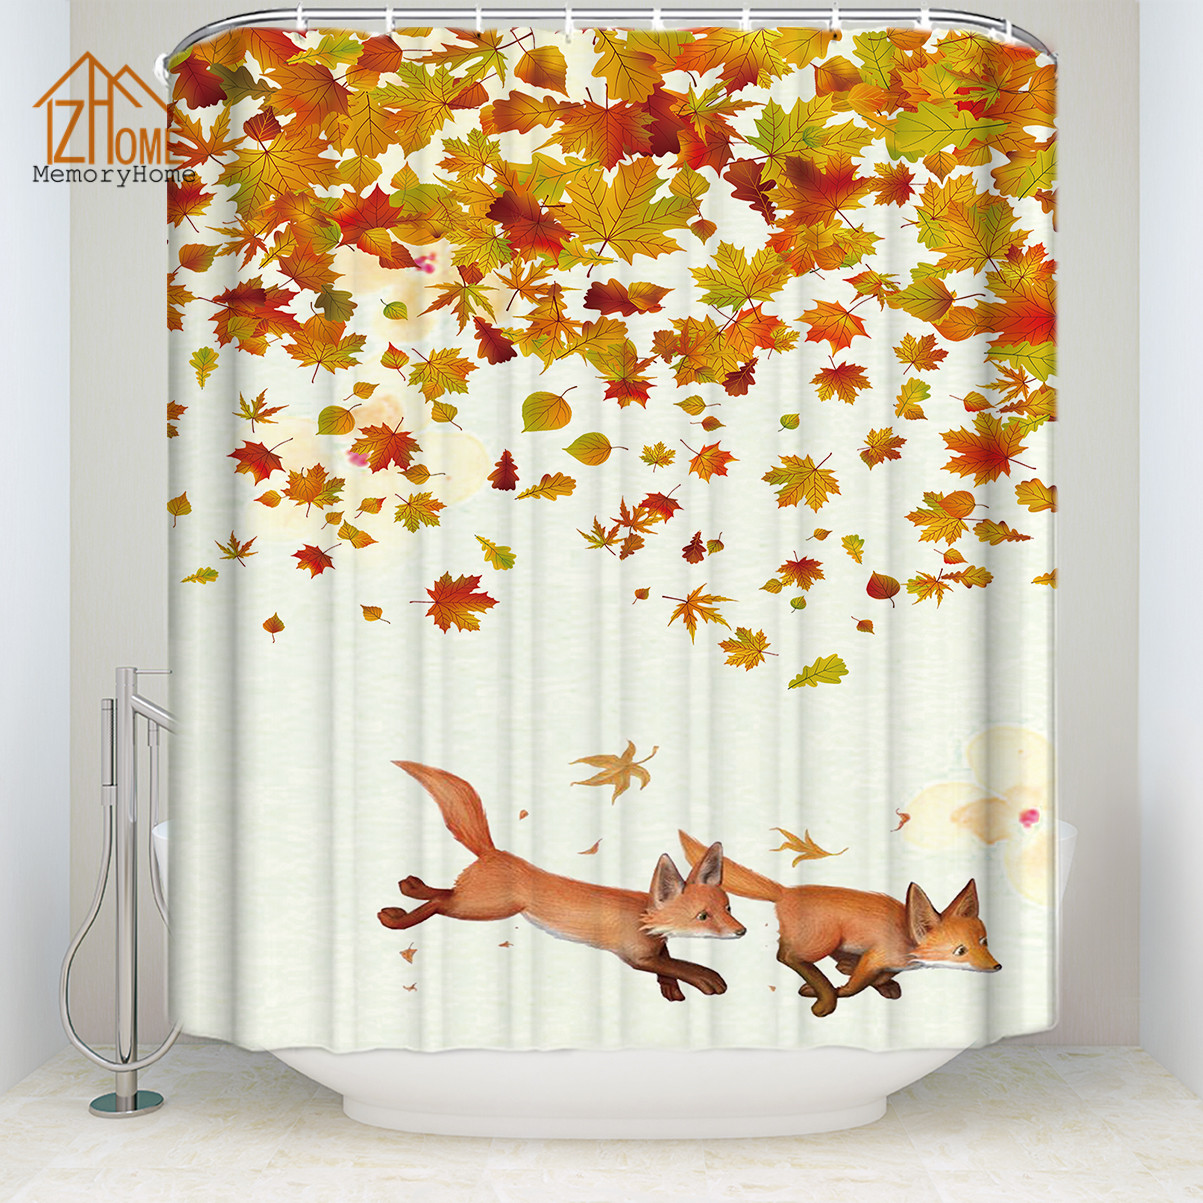 Fall Shower Curtain Autumn Foliage Maple Leaf Print for Bathroom